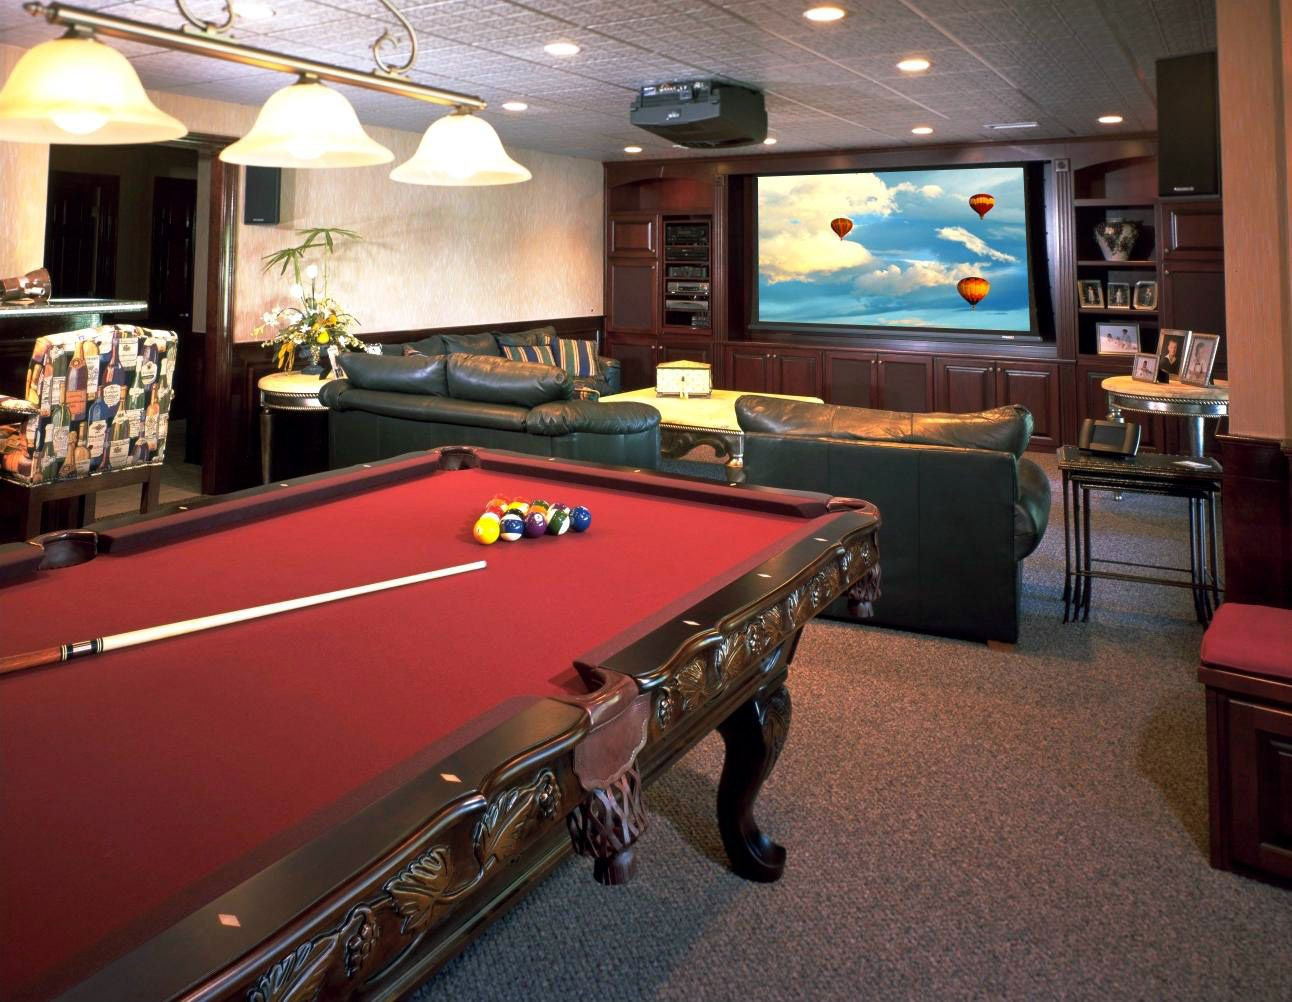 How To Transform An Empty Space Into A Game Room Game Room Basement Basement Games Entertainment Room Decor